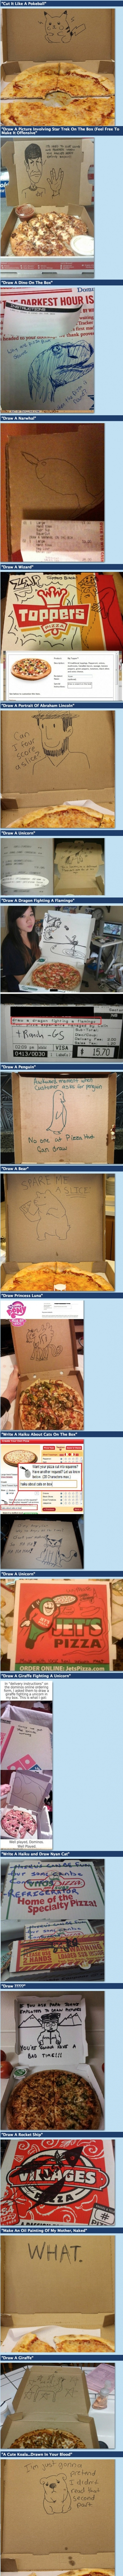 20 Funny special requests, pizza boxes, next time I order pizza online I will ask them to draw hello kitty lol